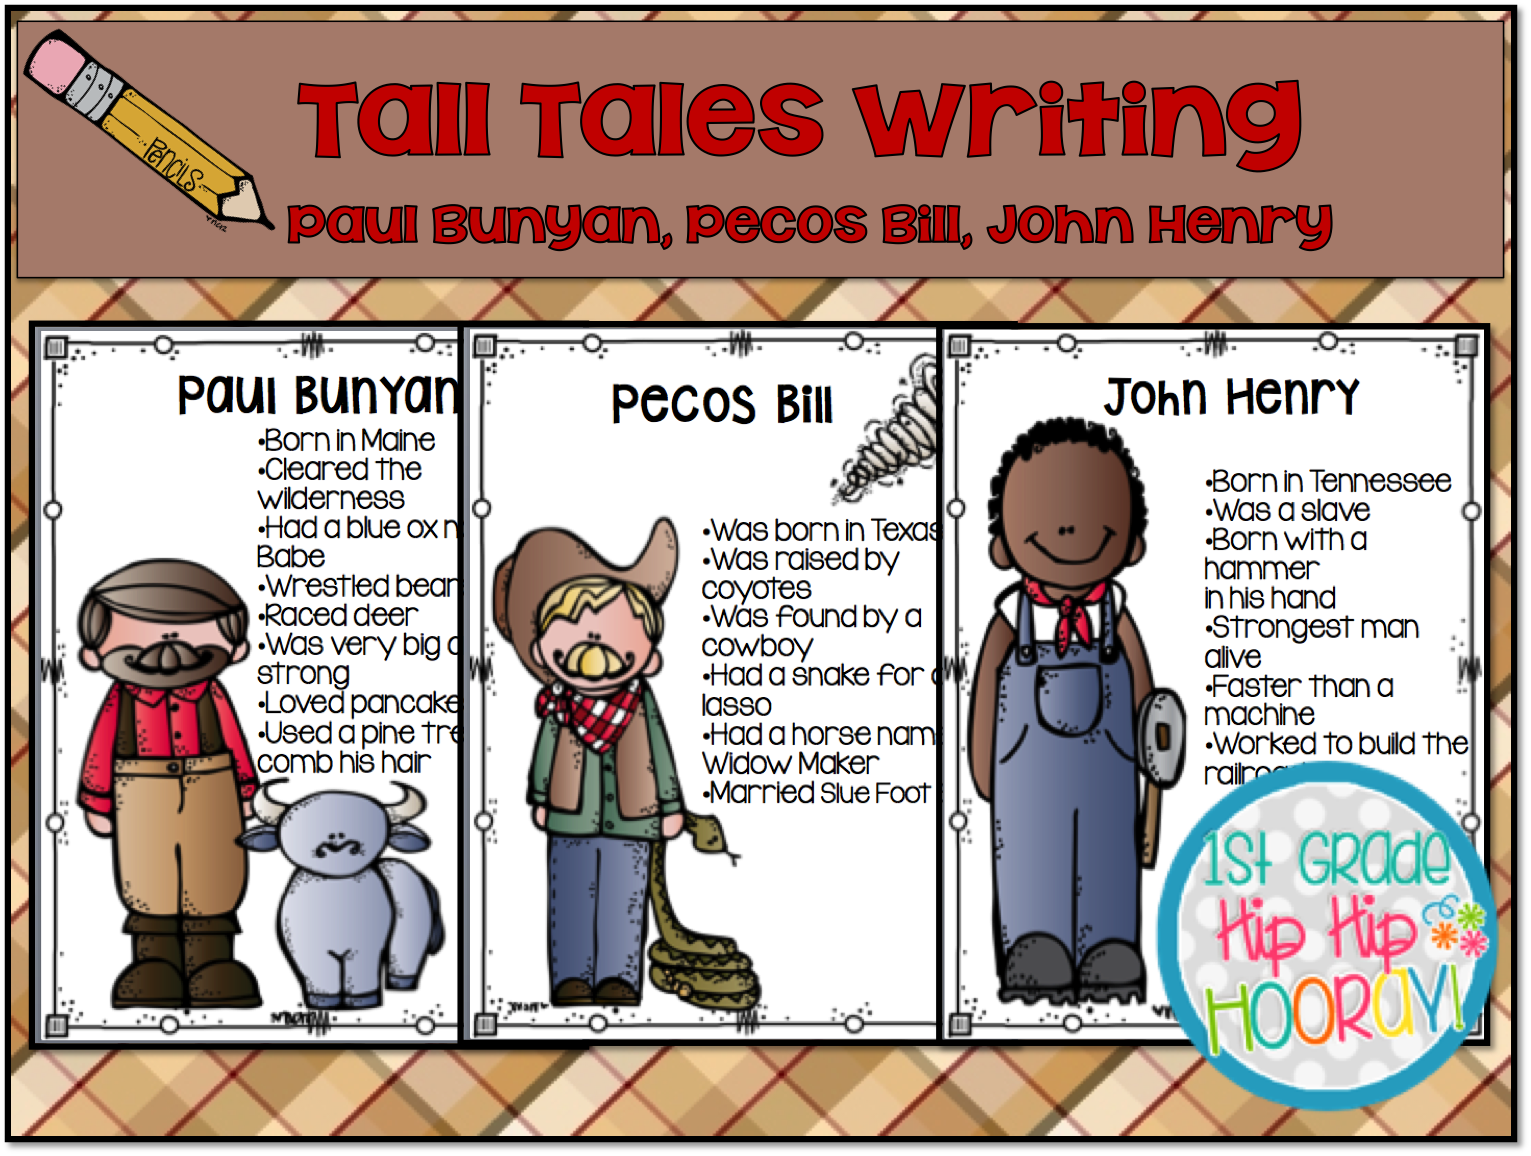 1st Grade Hip Hip Hooray Using Tall Tale Characters To Write